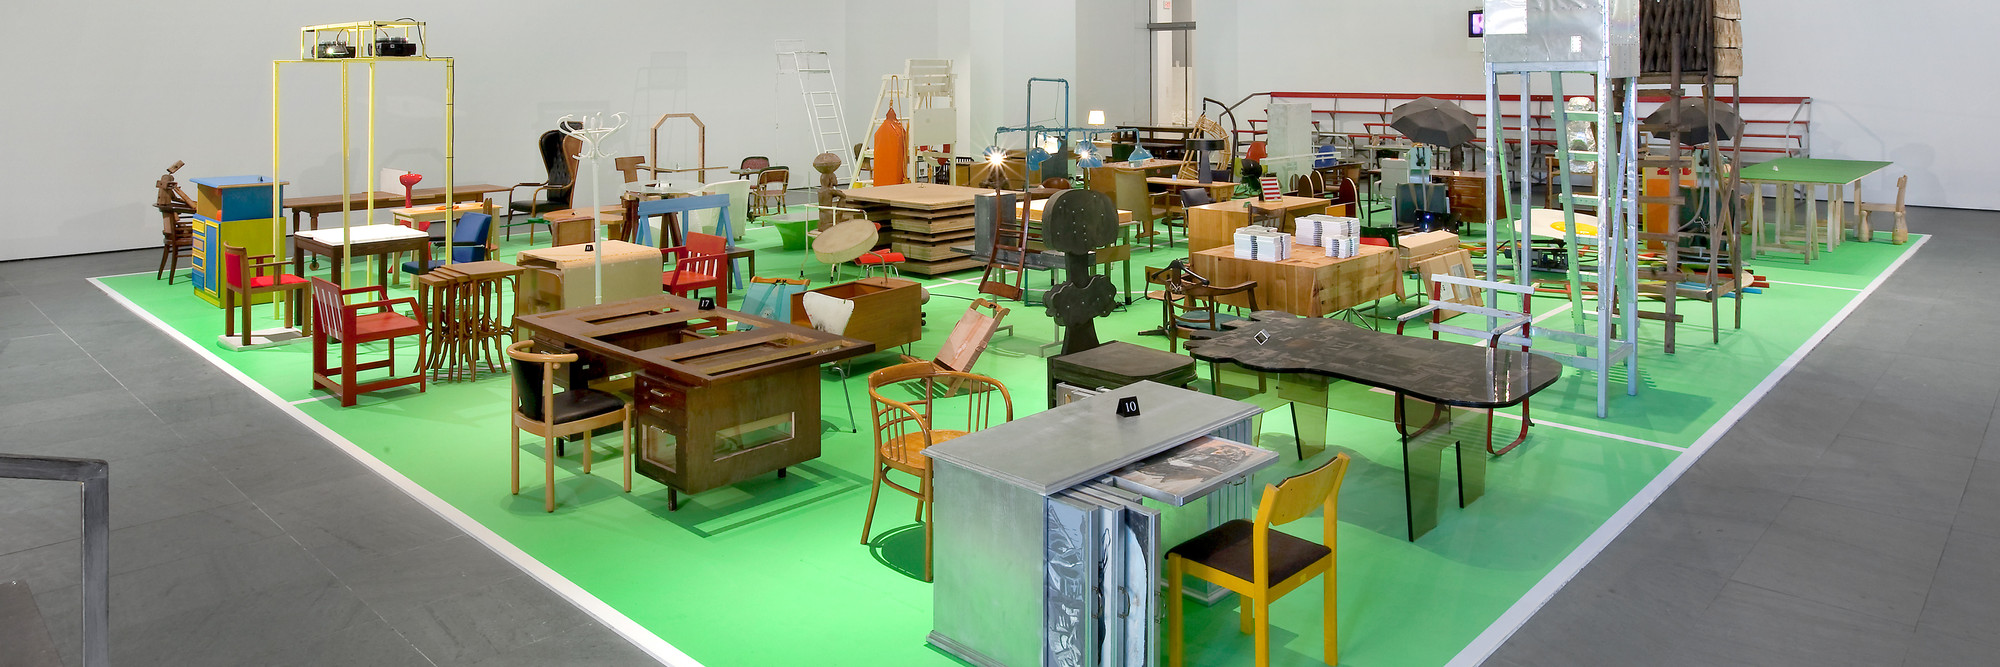 "Martin Kippenberger. Installation view of The Happy End of Franz Kafka's ""Amerika."" Mixed media, dimensions variable. © Estate Martin Kippenberger, Galerie Gisela Capitain, Cologne. Photo © 2009 Jason Mandella"